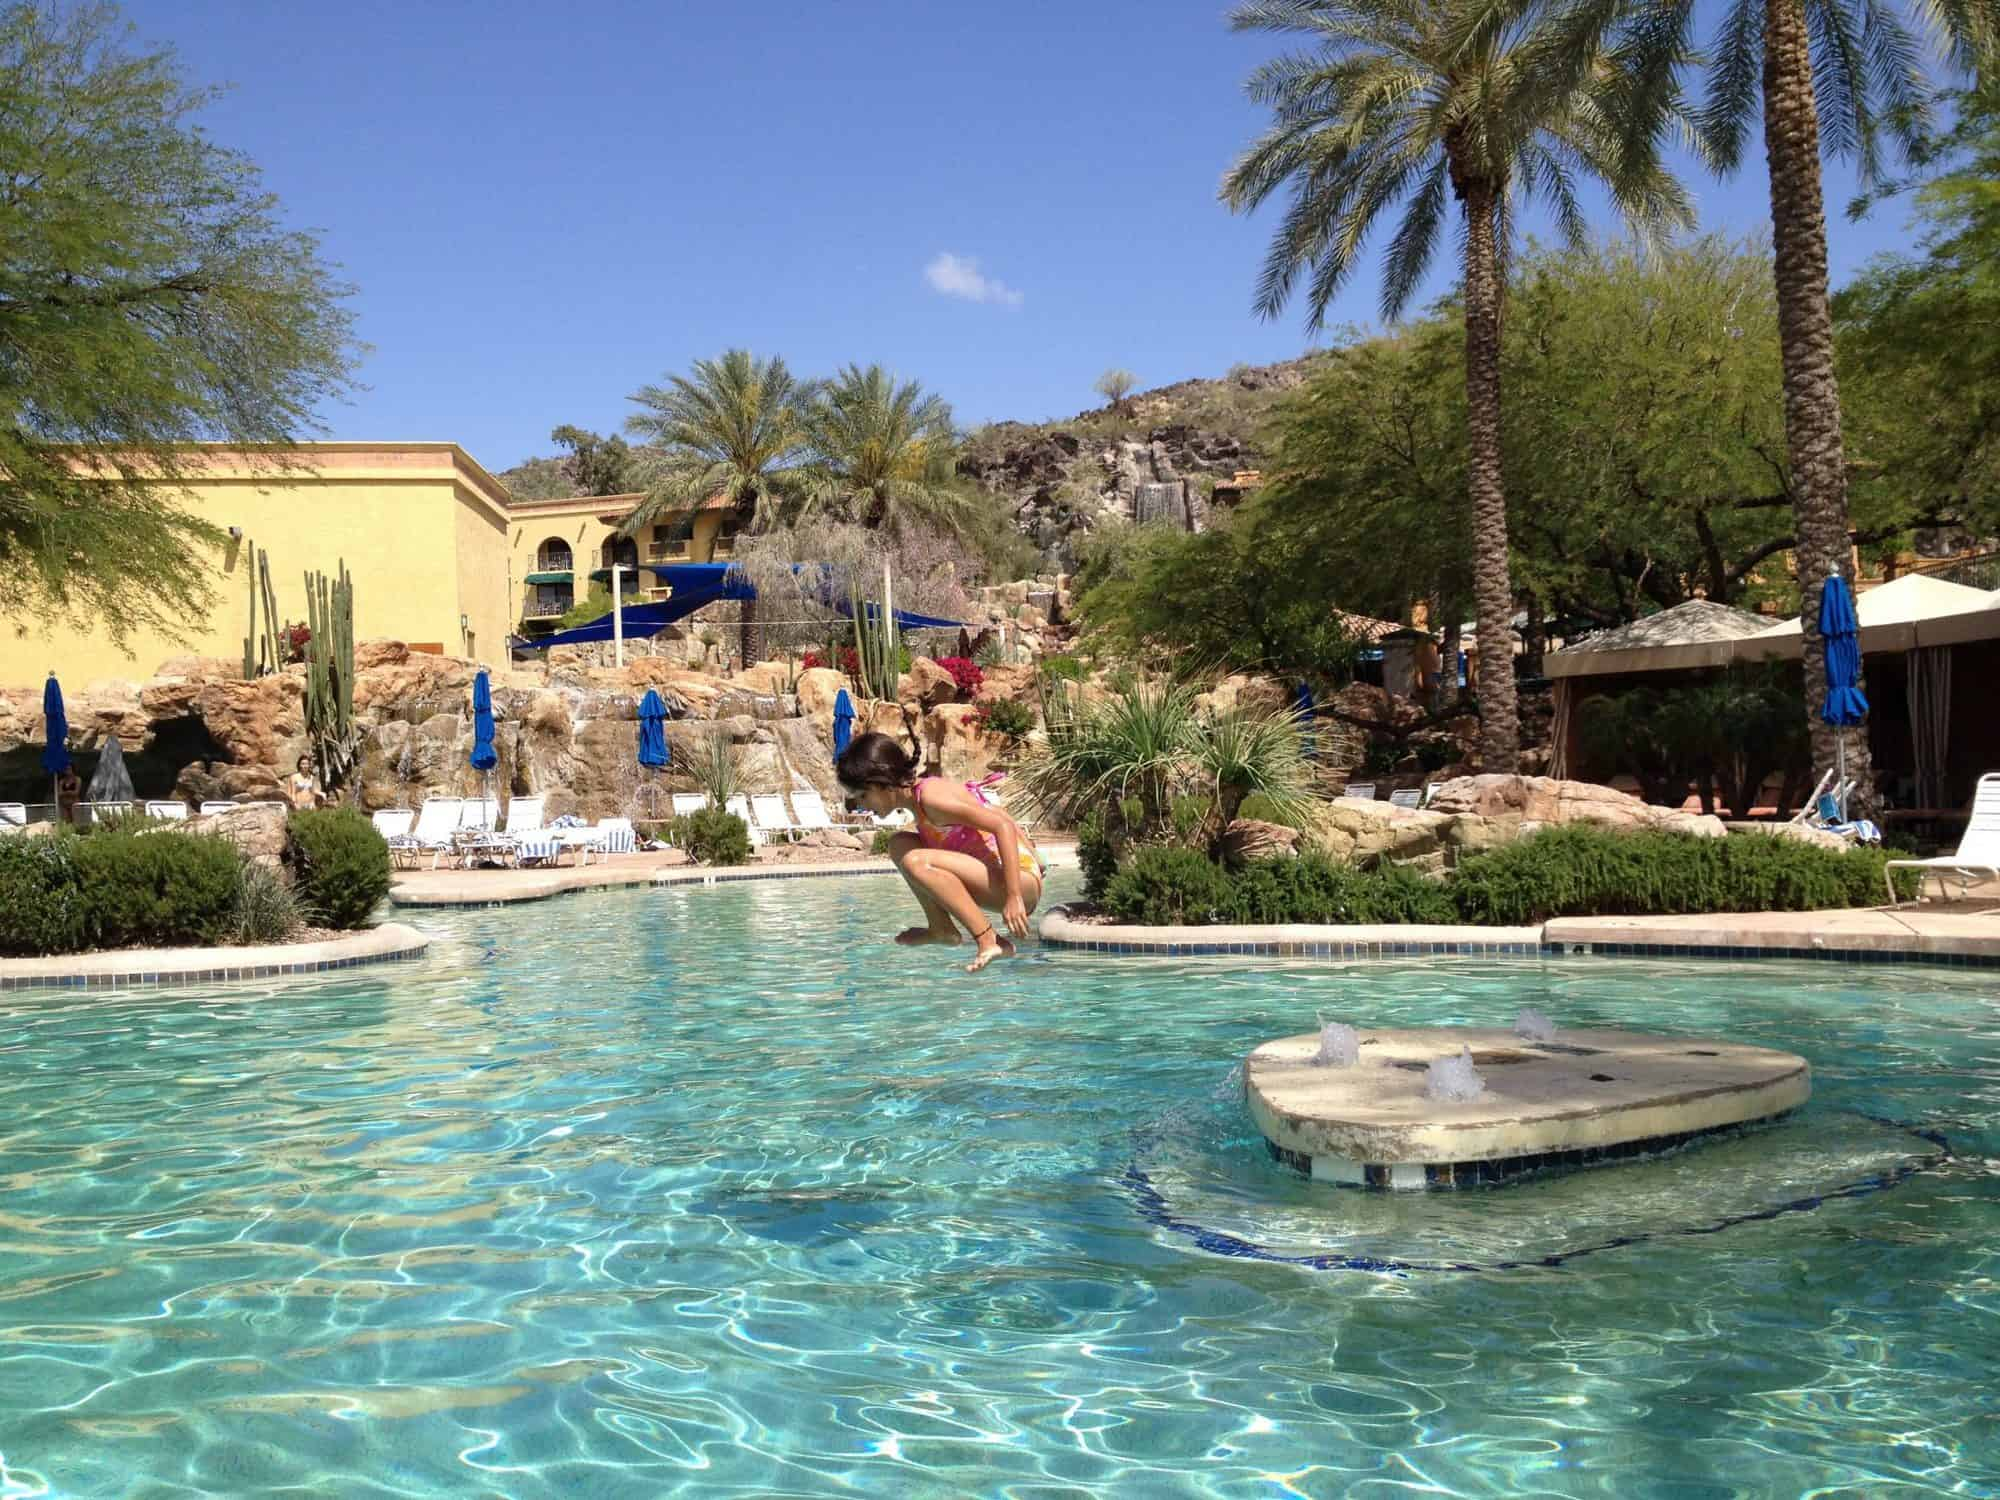 things-to-do-in-phoenix-with-kids-resort-pool-by-tiffany-vaughn